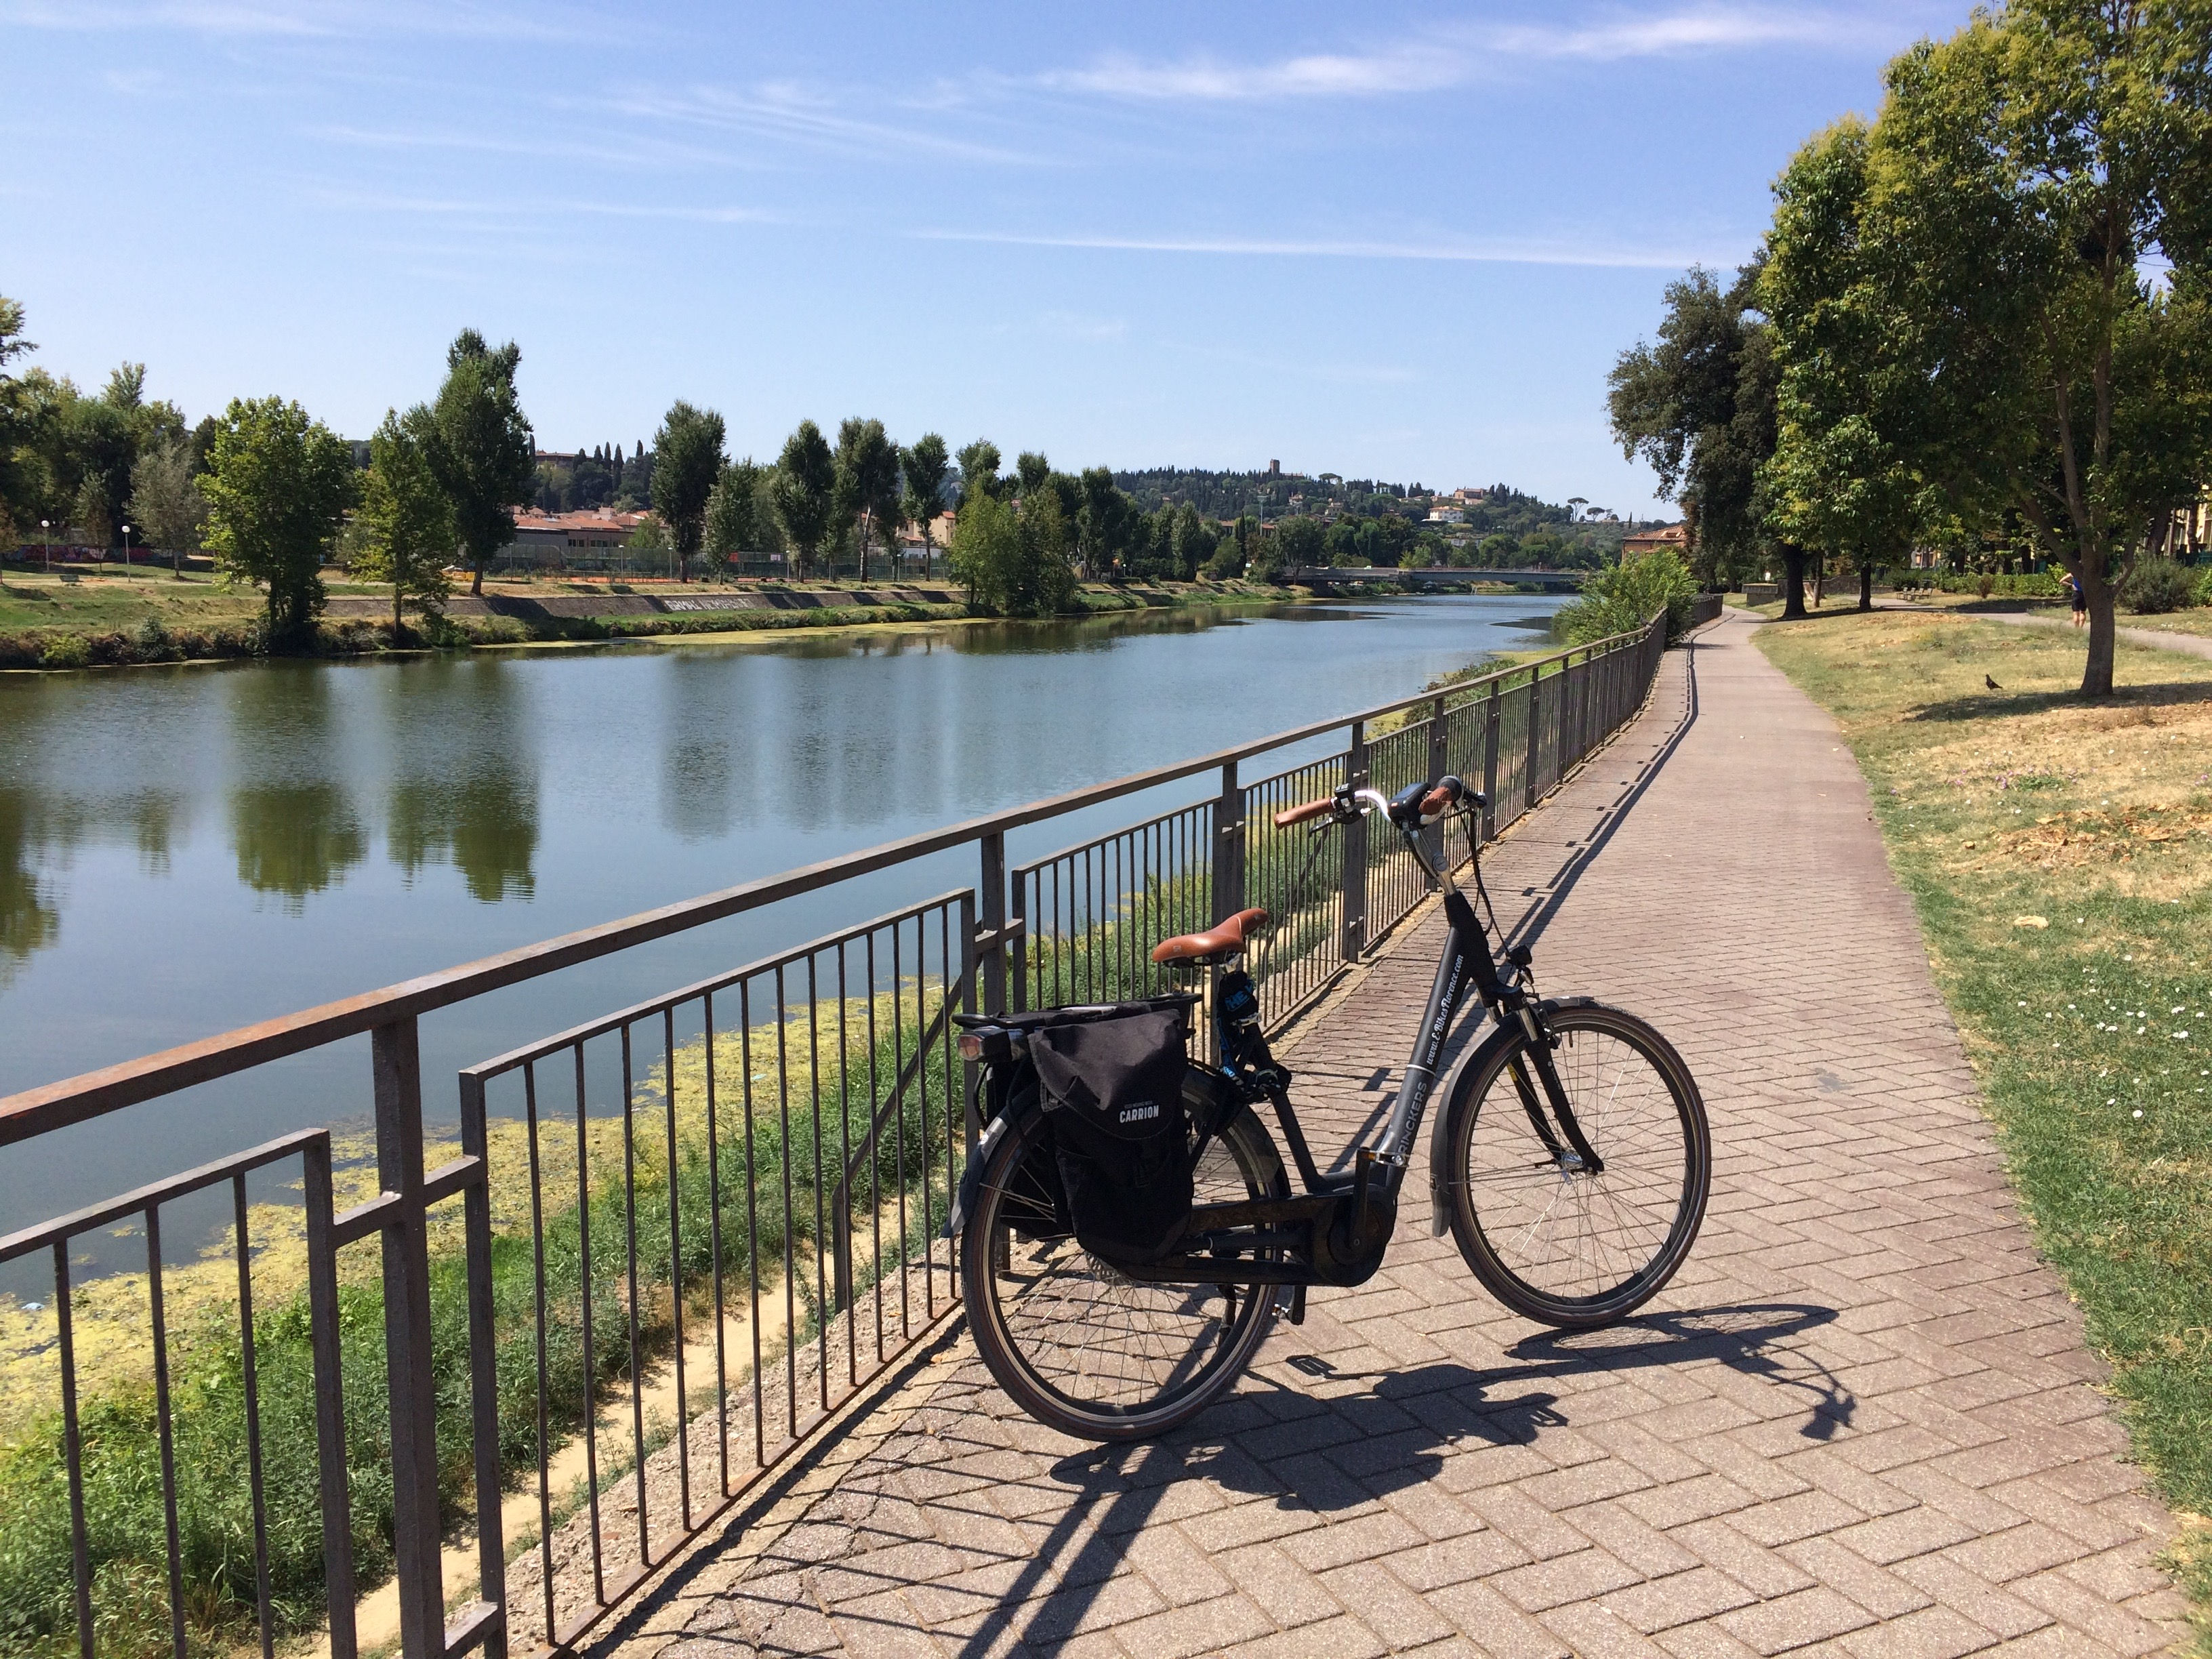 River Arno bike path